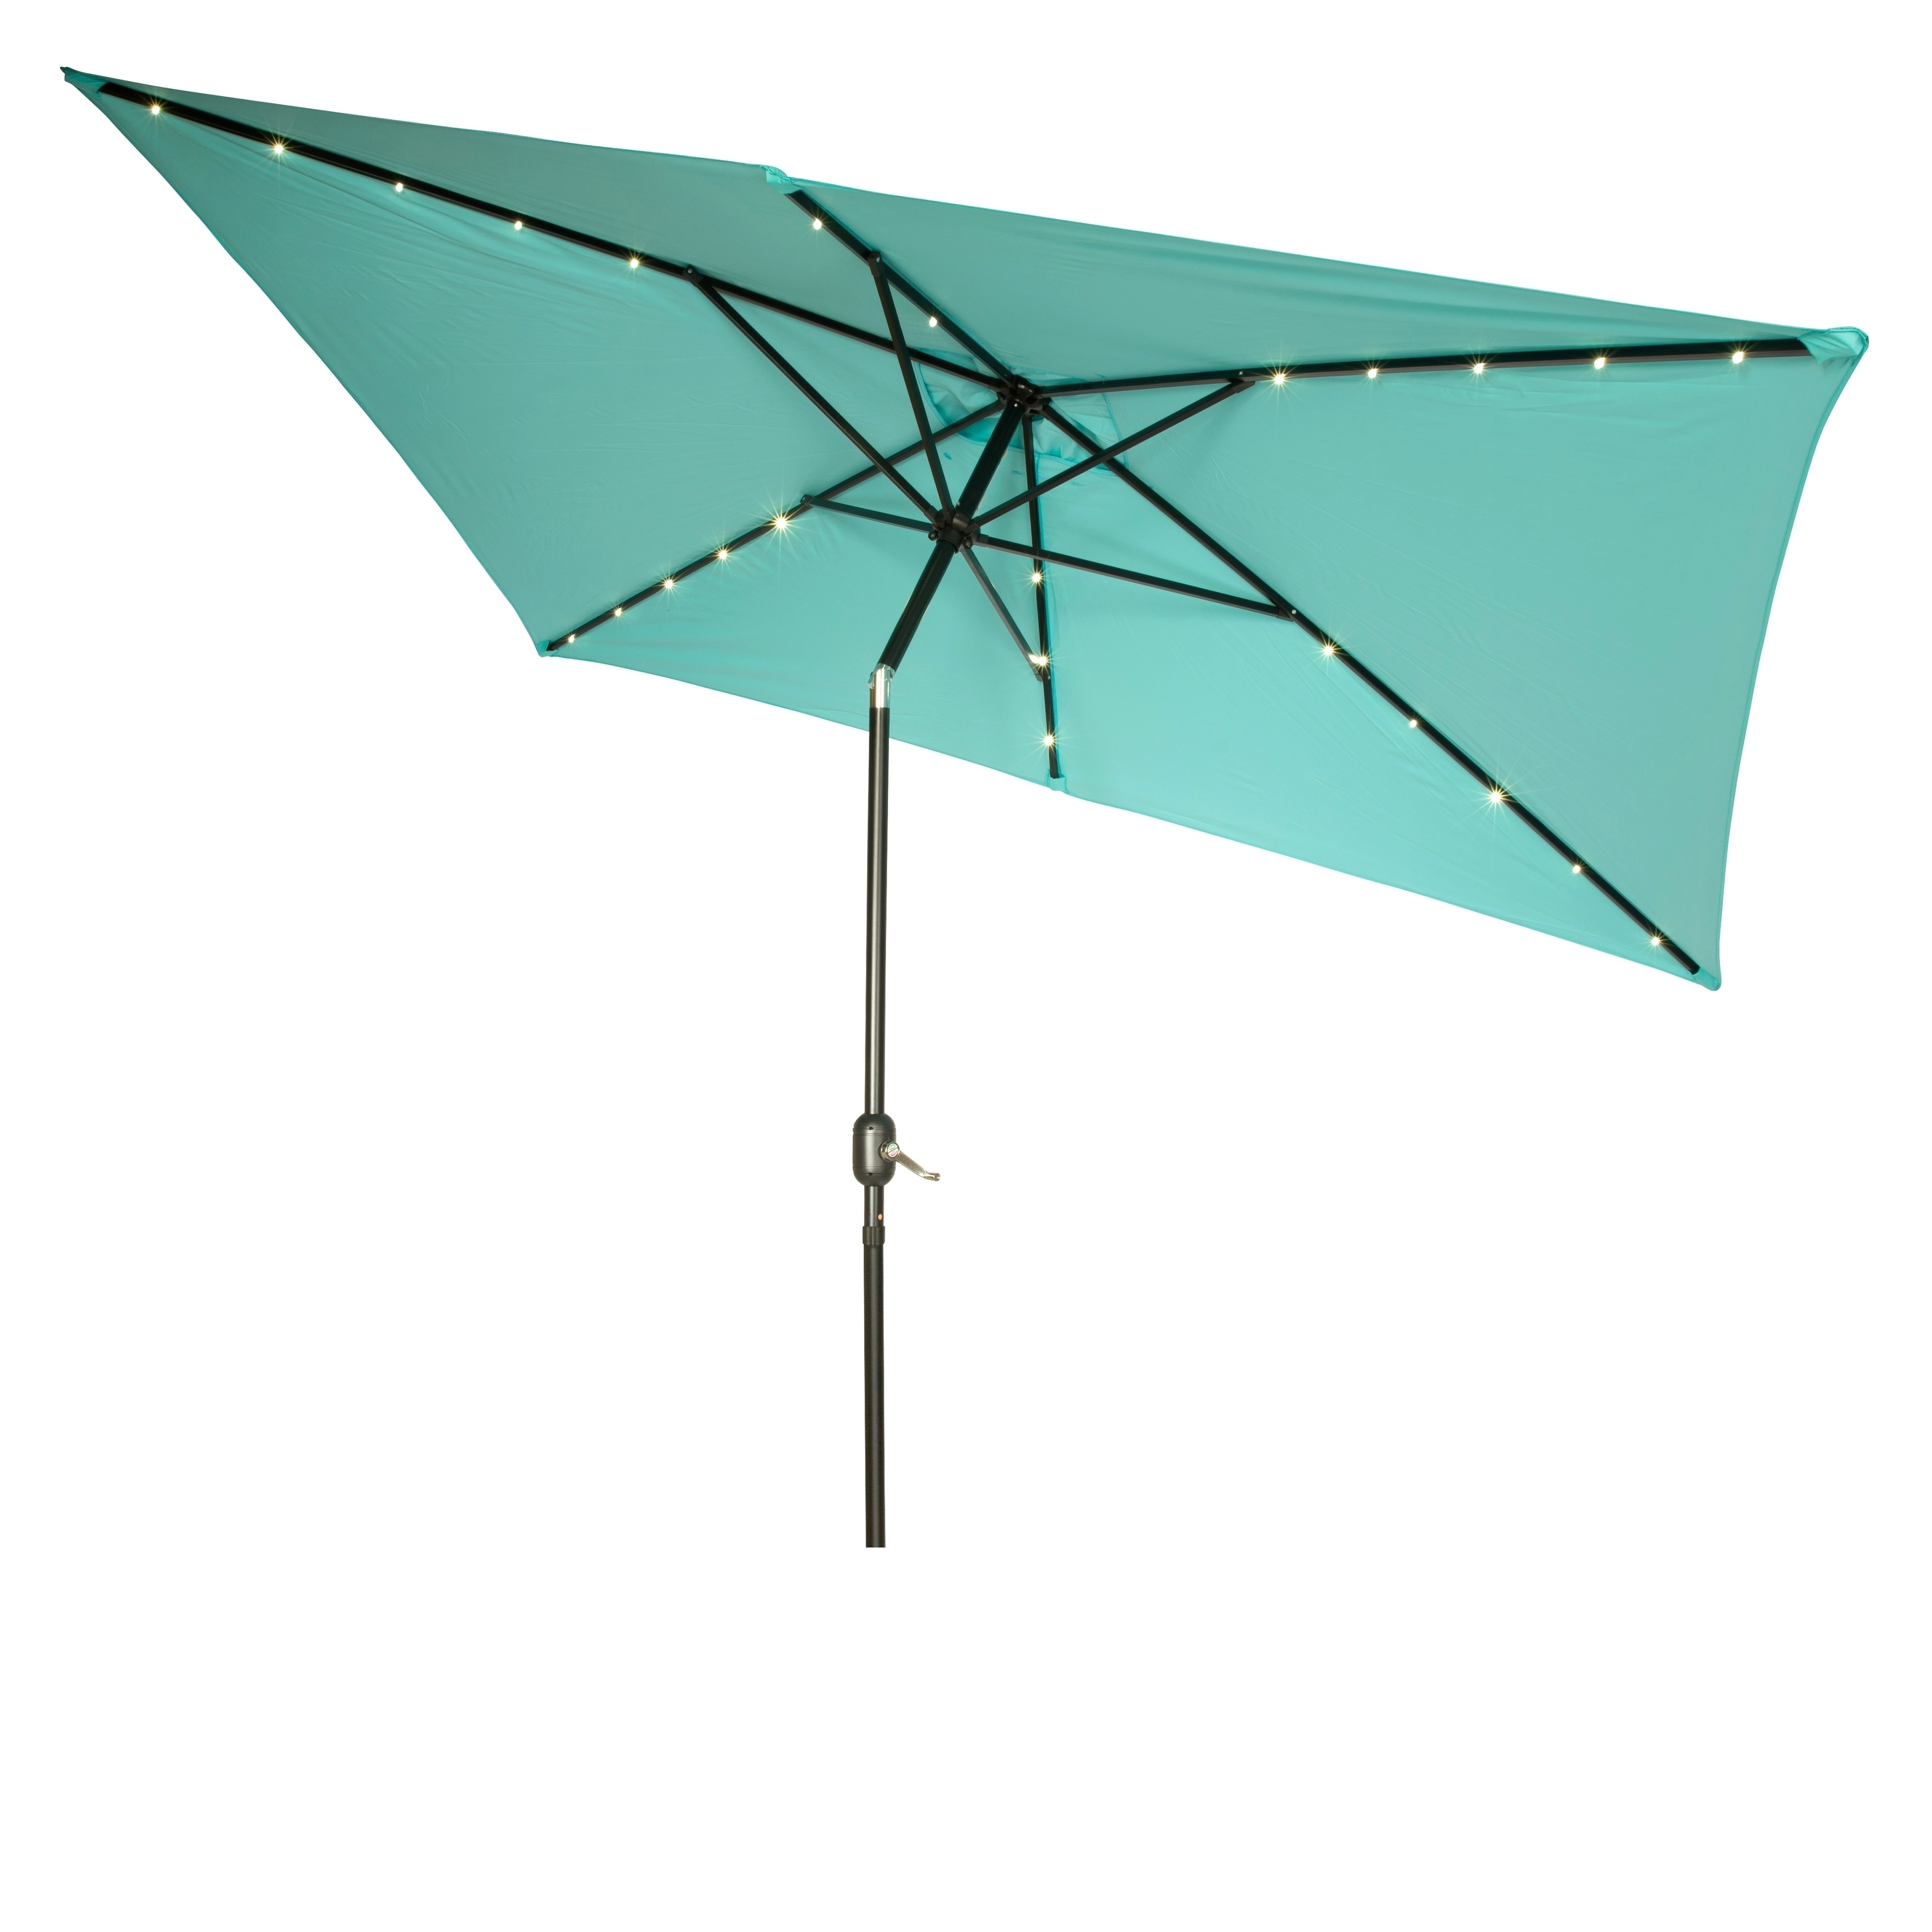 Shop Rectangular Solar Powered Led Lighted Patio Umbrella – 10' X With Regard To Widely Used Lighted Patio Umbrellas (View 18 of 20)